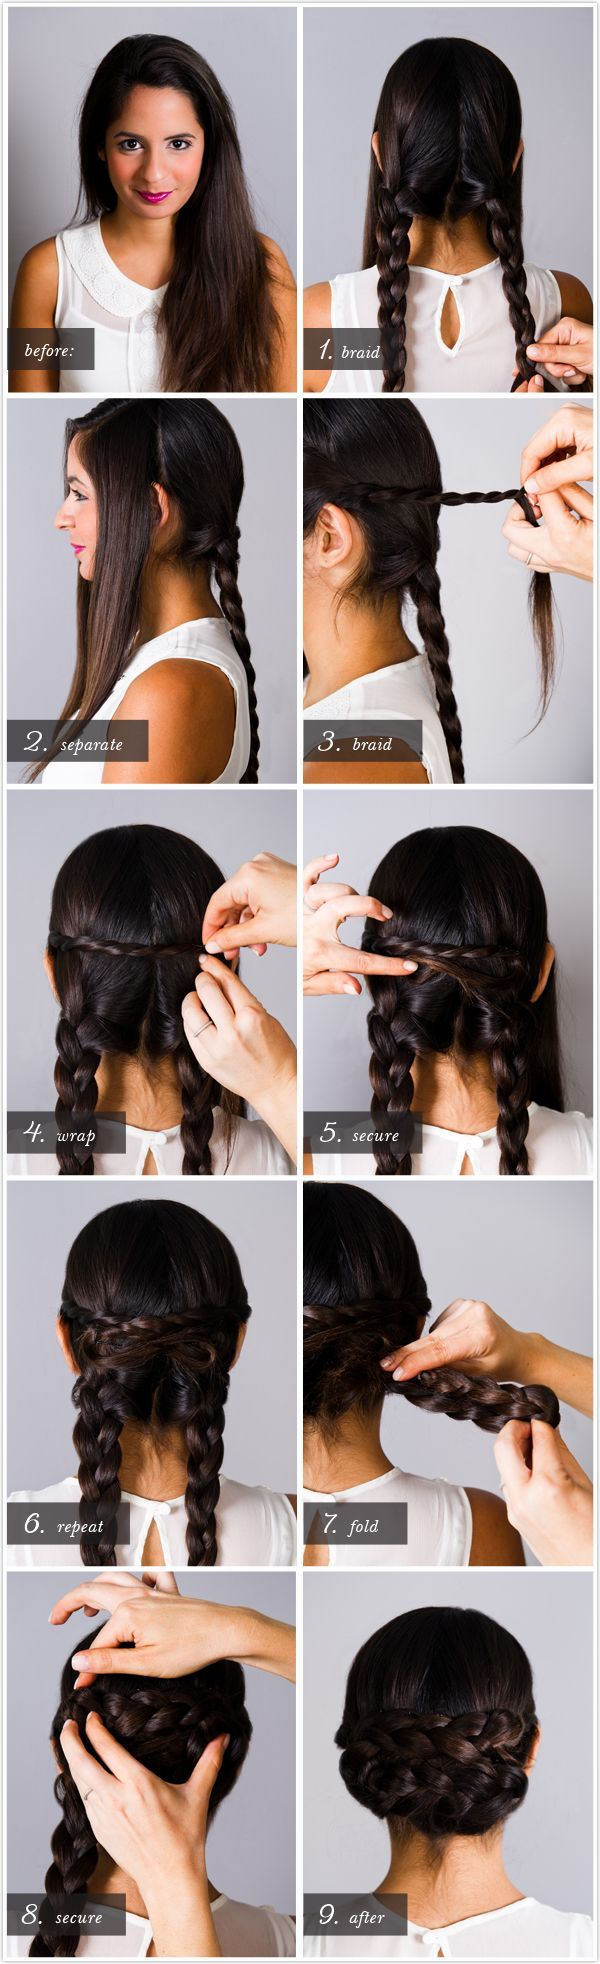 Pretty Simple Updos: Braided Chignon Hairstyle Tutorial